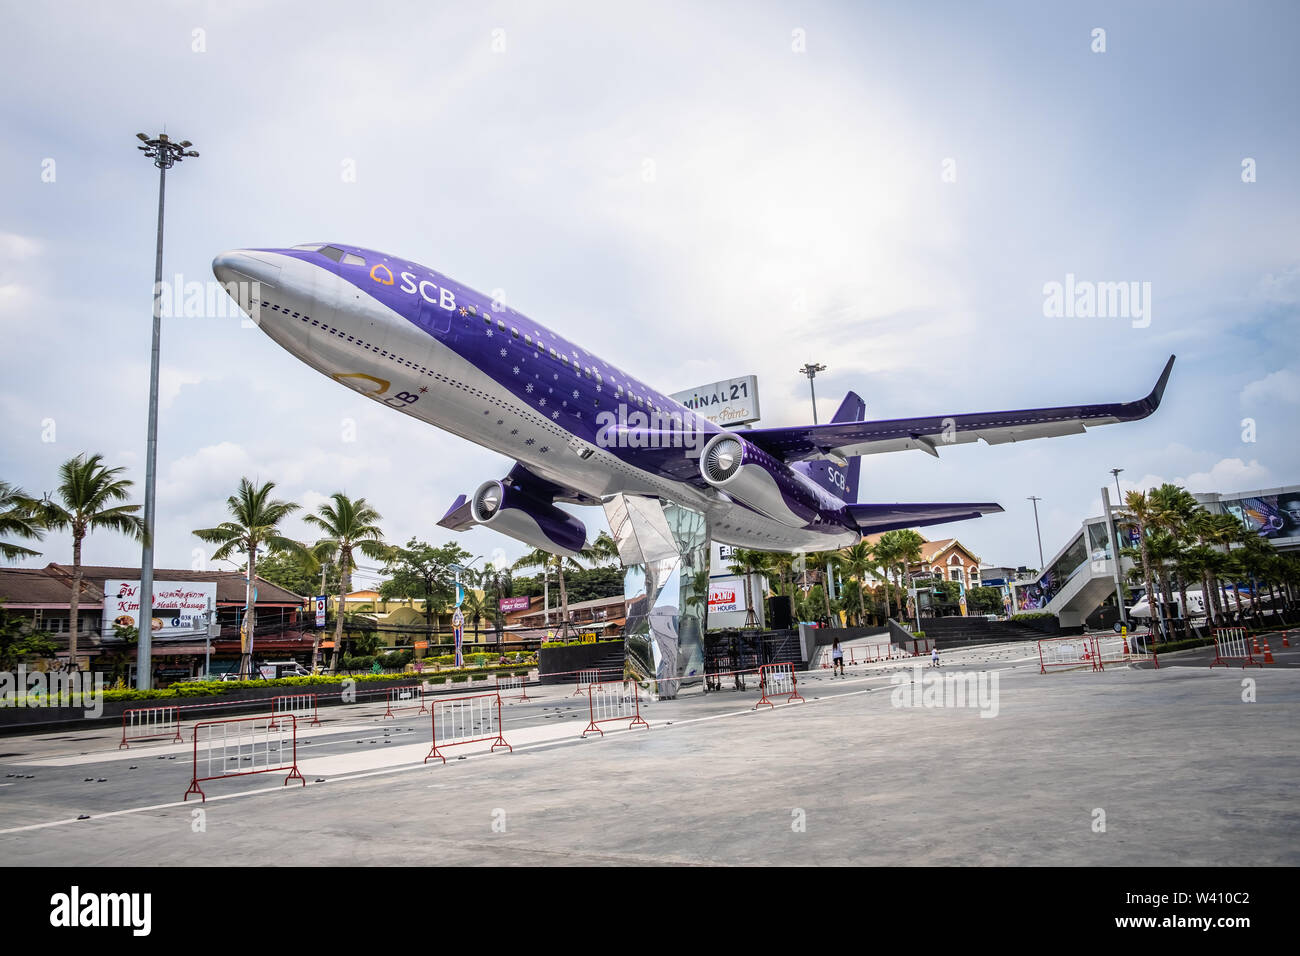 Pattaya, Thailand - May 22, 2019: The Termina 21 ,shopping area of Pattaya The front yard has a large plane model. And this is also a large and modern - Stock Image